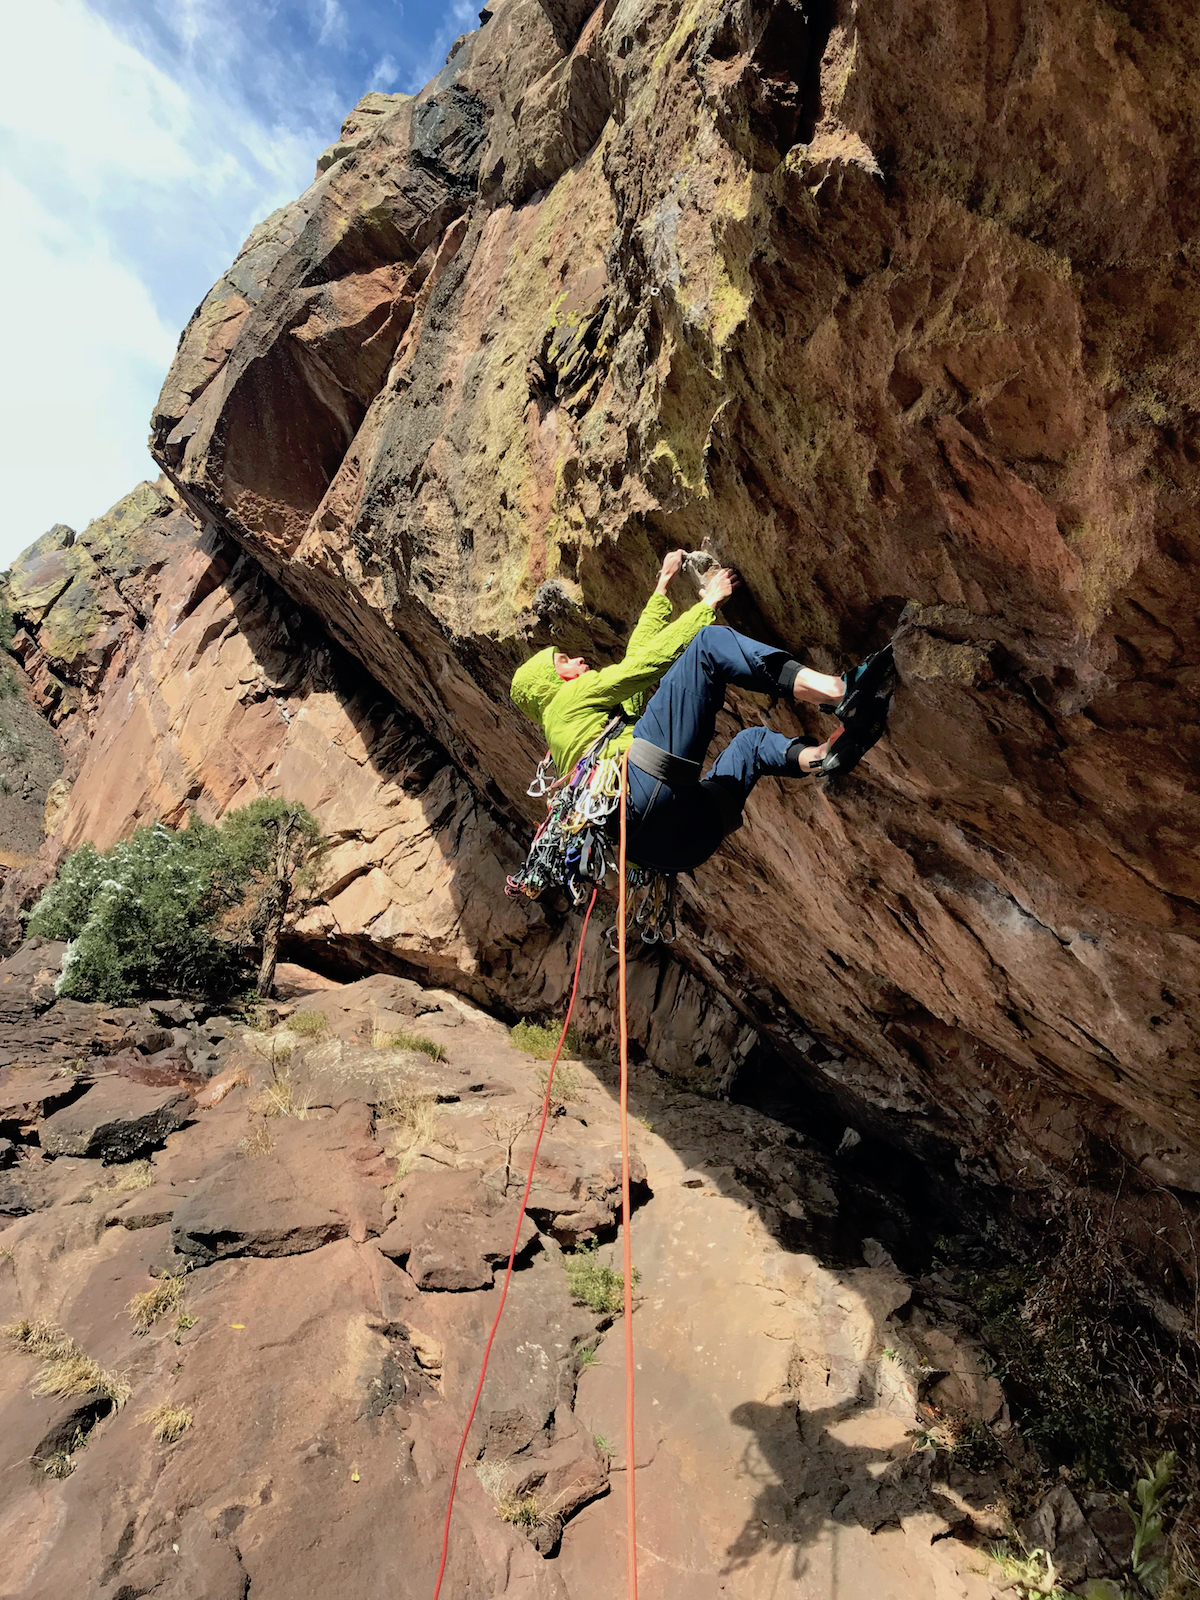 Josh Wharton starts up T2 to Jules Verne to the Connection pitch to a new route in Eldorado Canyon. [Photo] Chris Van Leuven